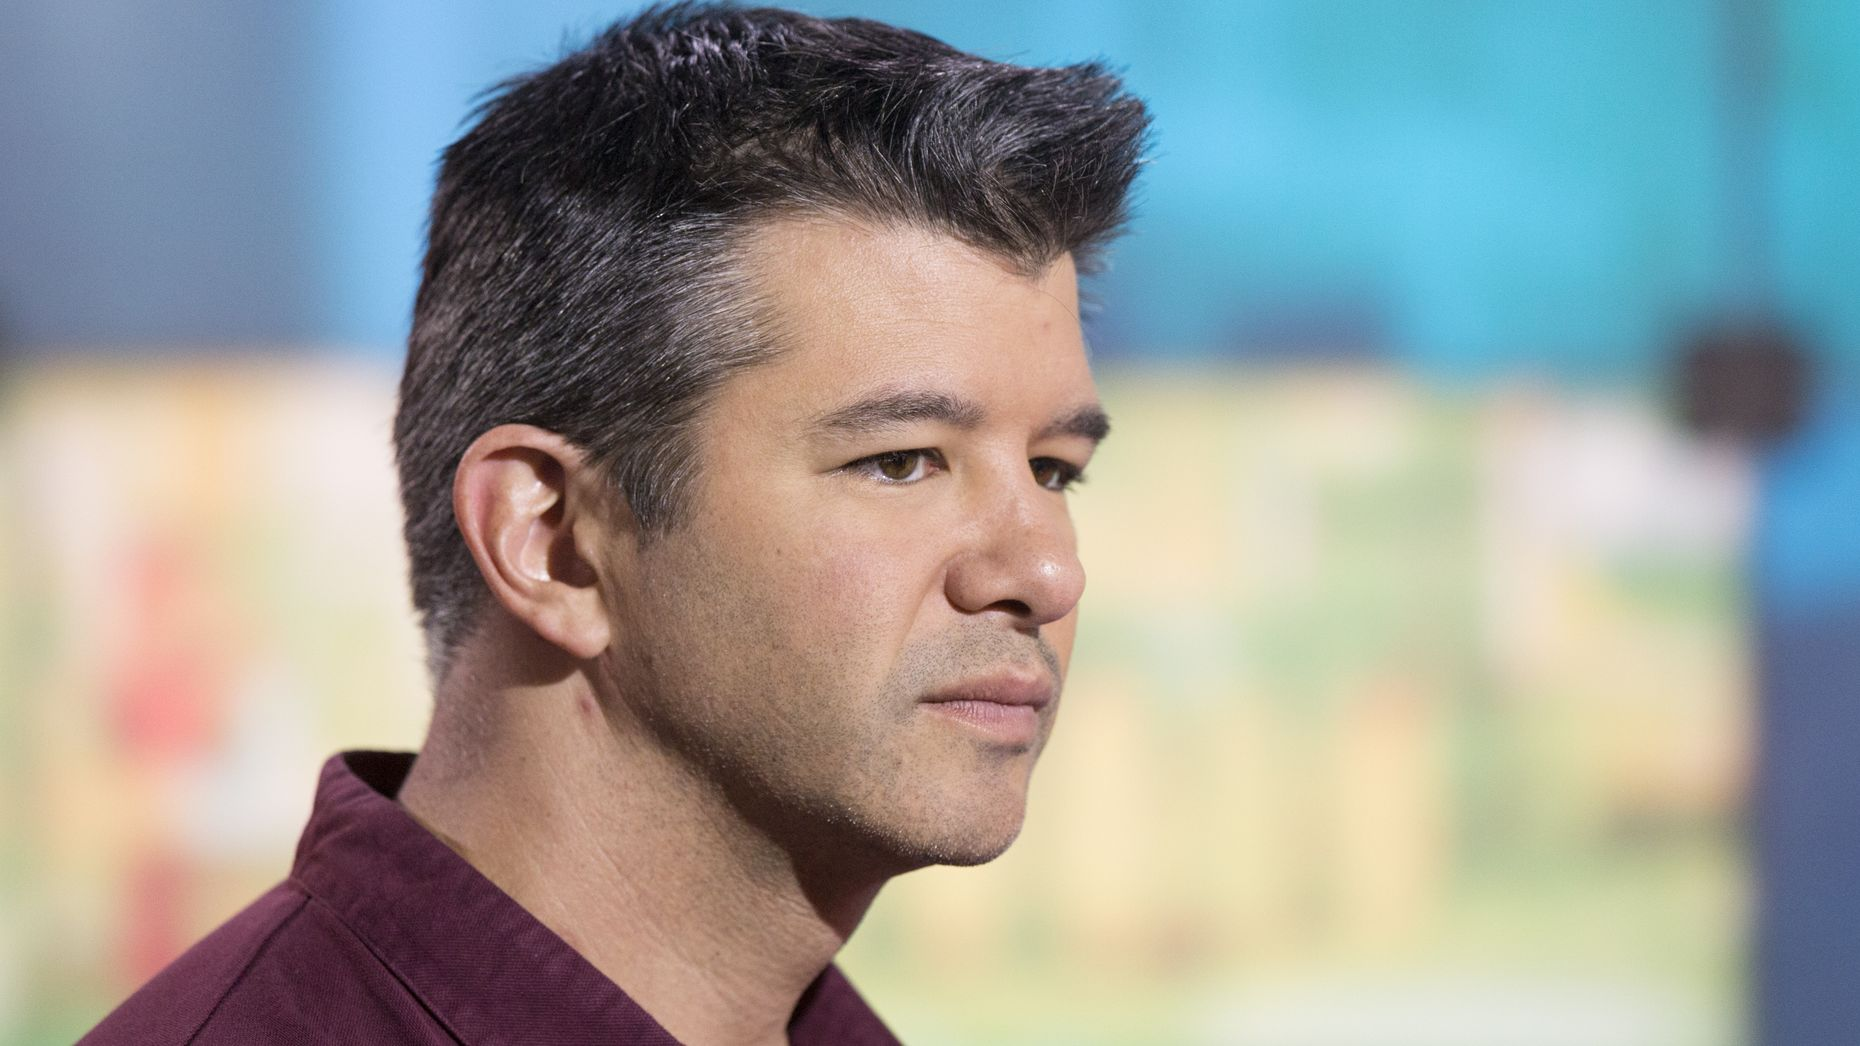 Travis Kalanick, CEO of Uber, whose shares have been valued differently by different mutual funds. Photo by Bloomberg.